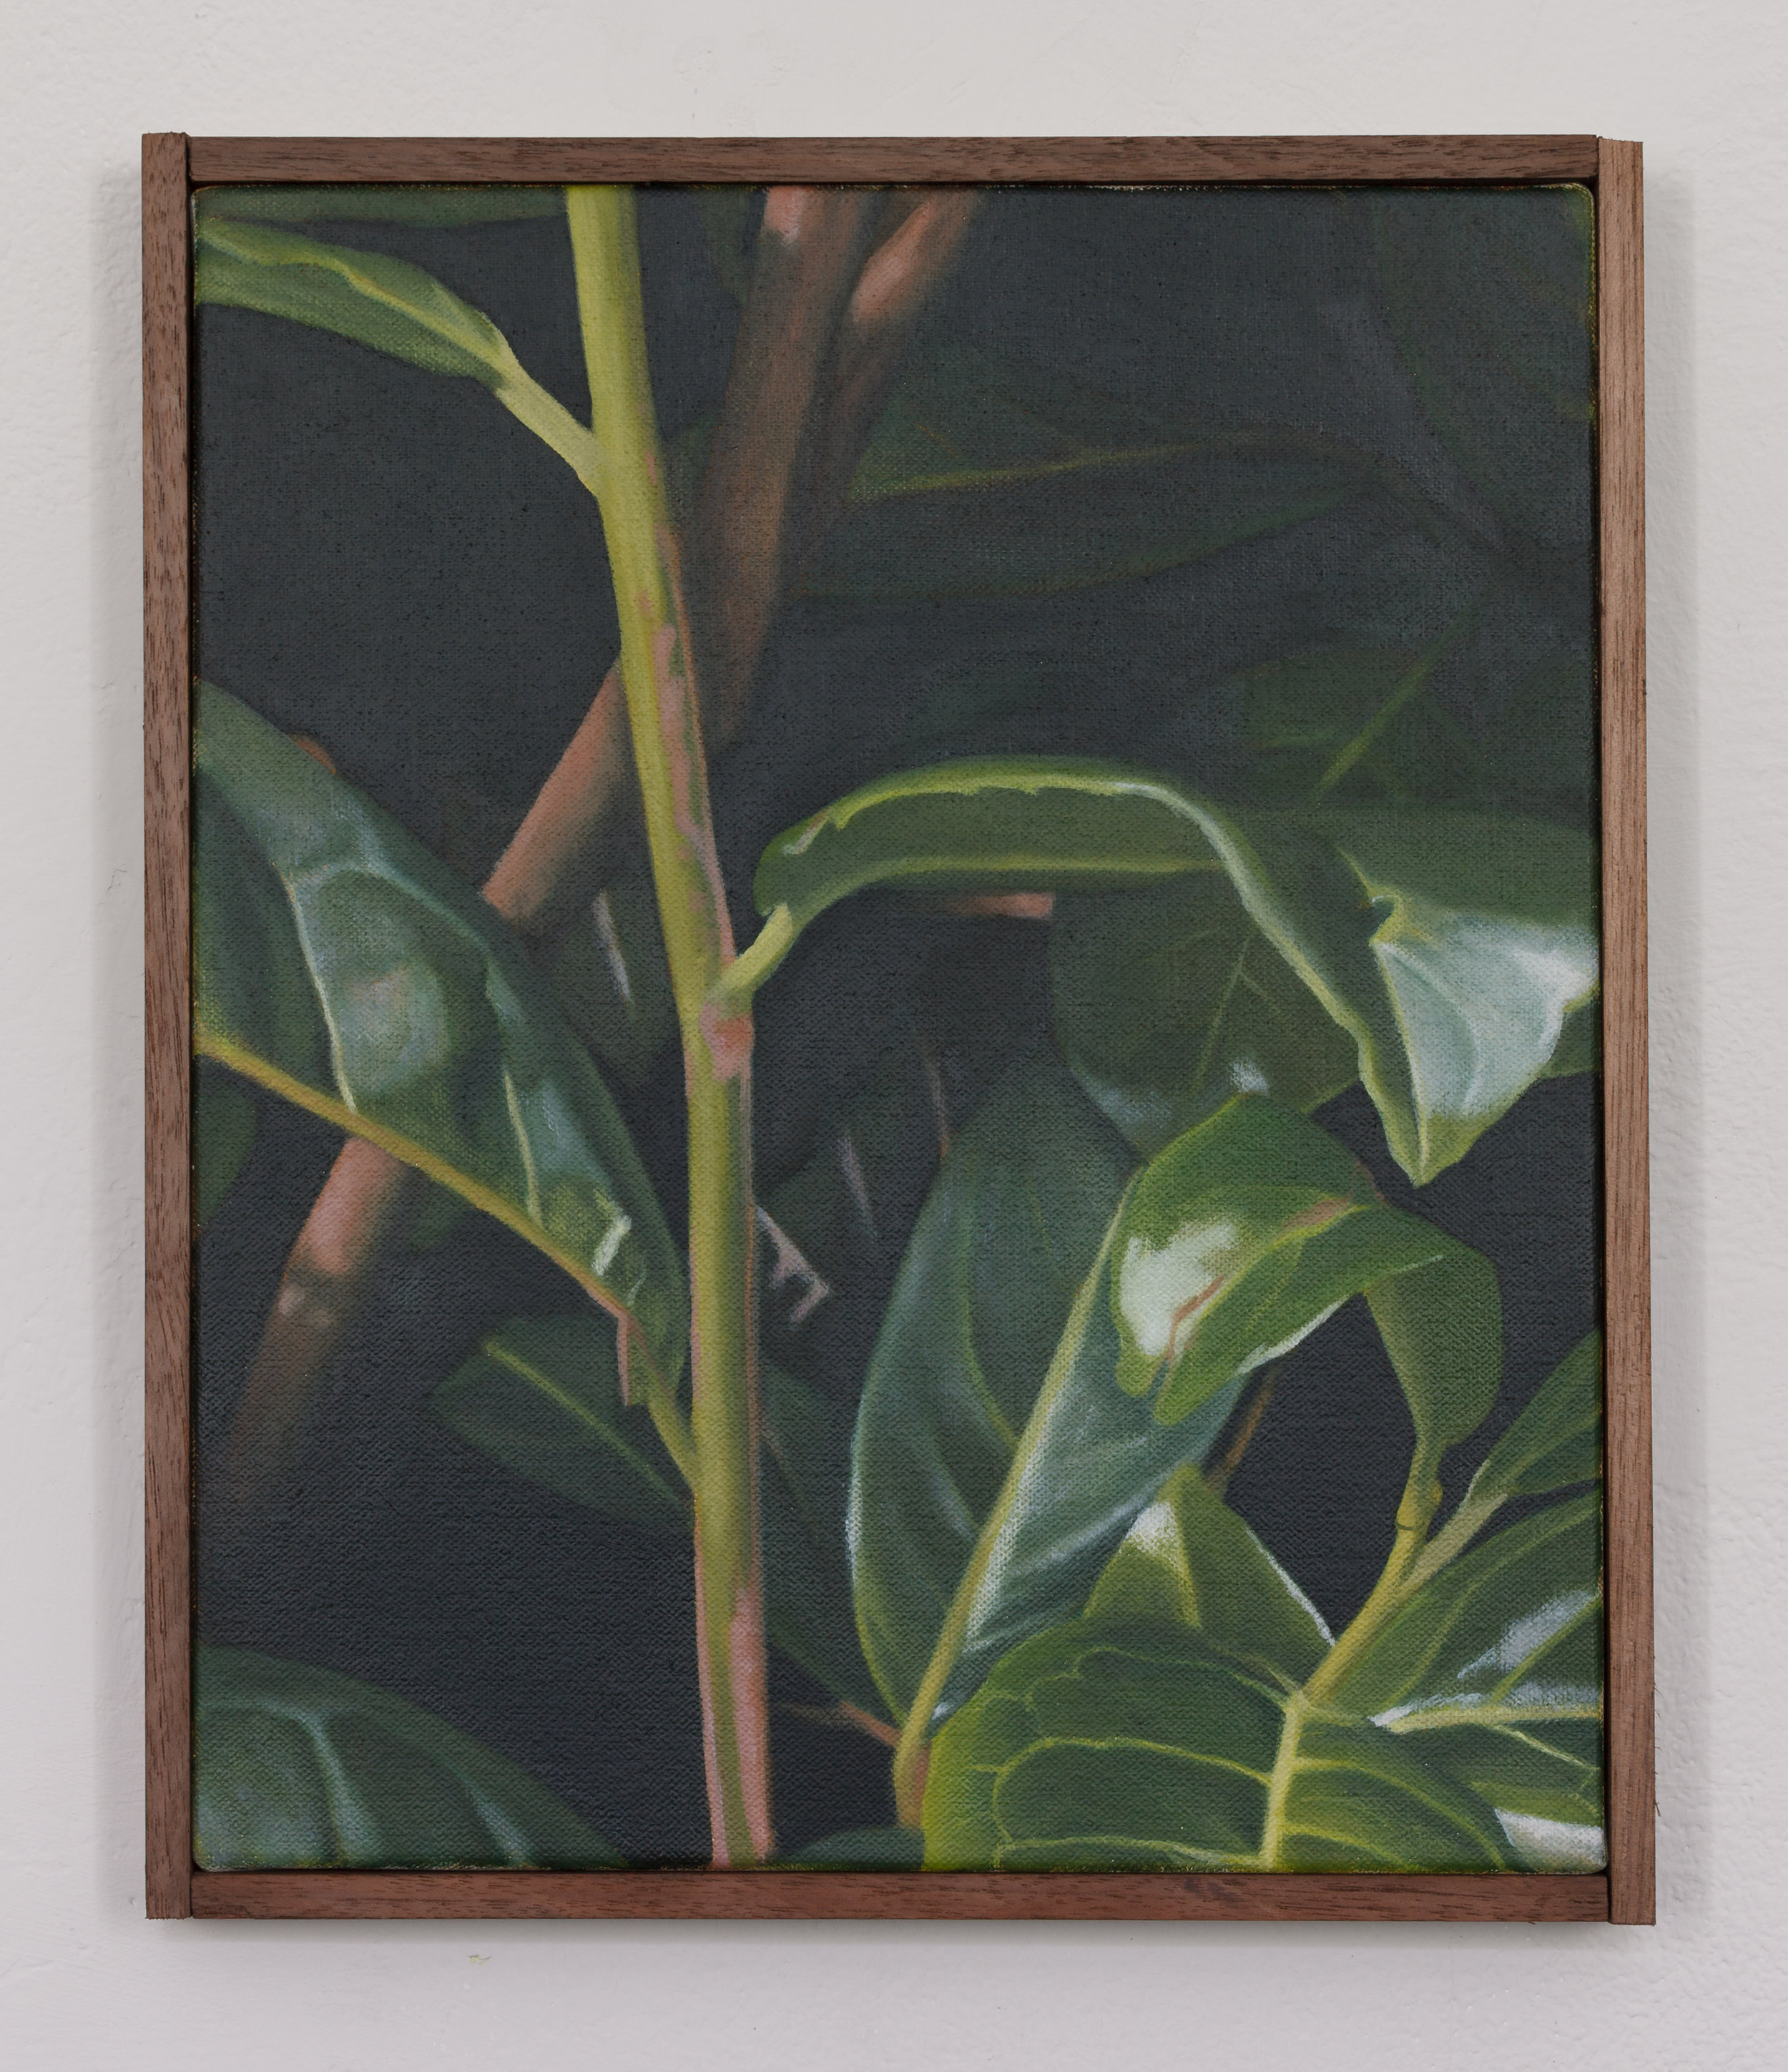 Laurel | 2018 | oil on linen | Mahogany frame | 31 x 26 cm | 12.2 x 10.2 in